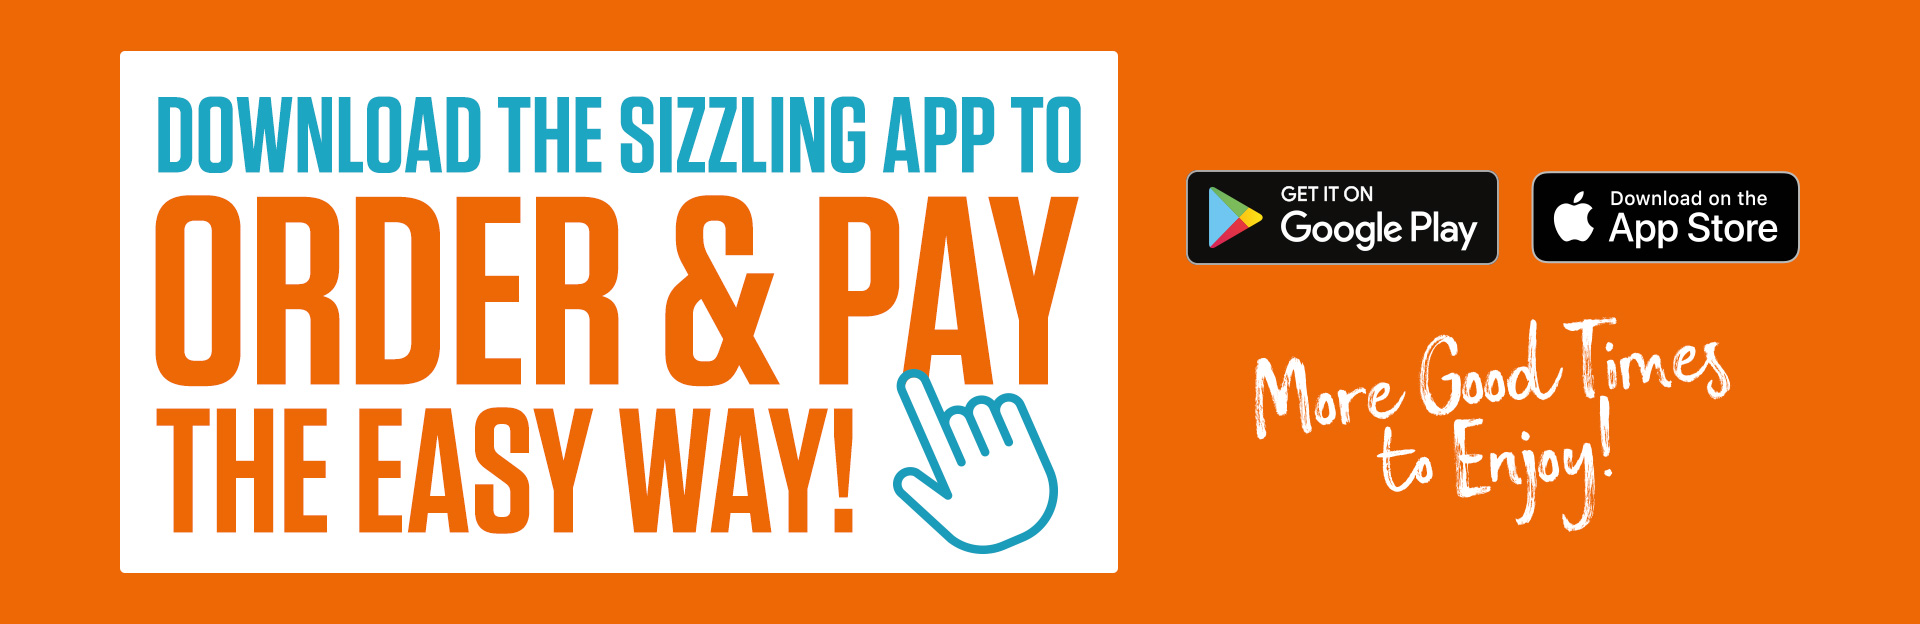 Access Great Offers & Deals on the Sizzling Pubs App!